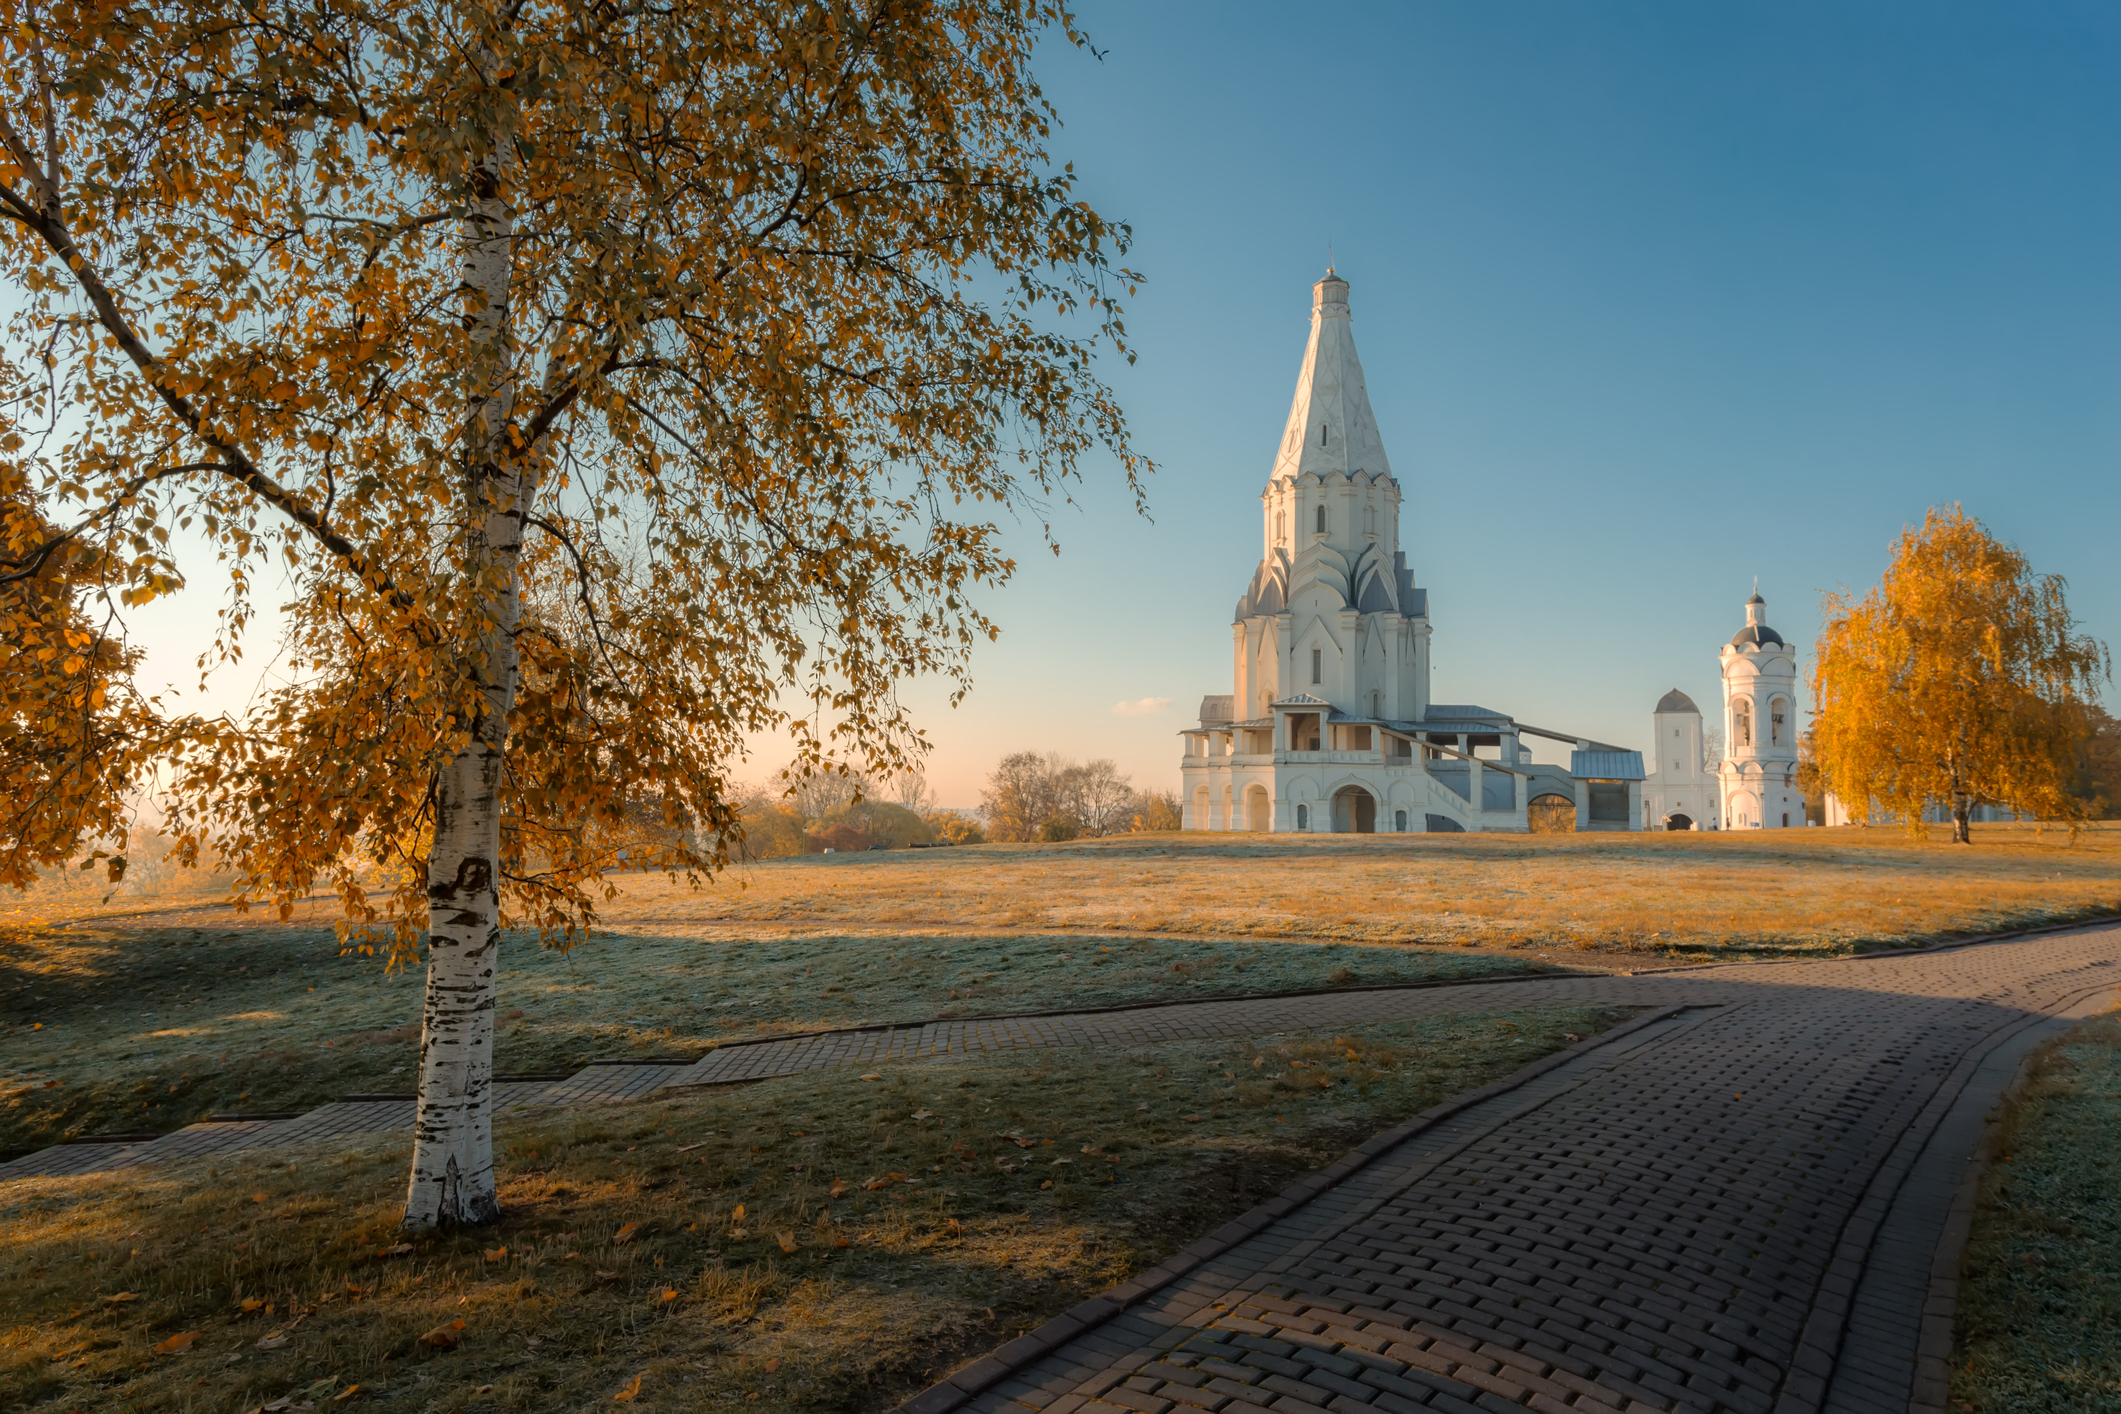 Dreamstime © - Kolomenskoe - Église de l'Ascension (5).jpg